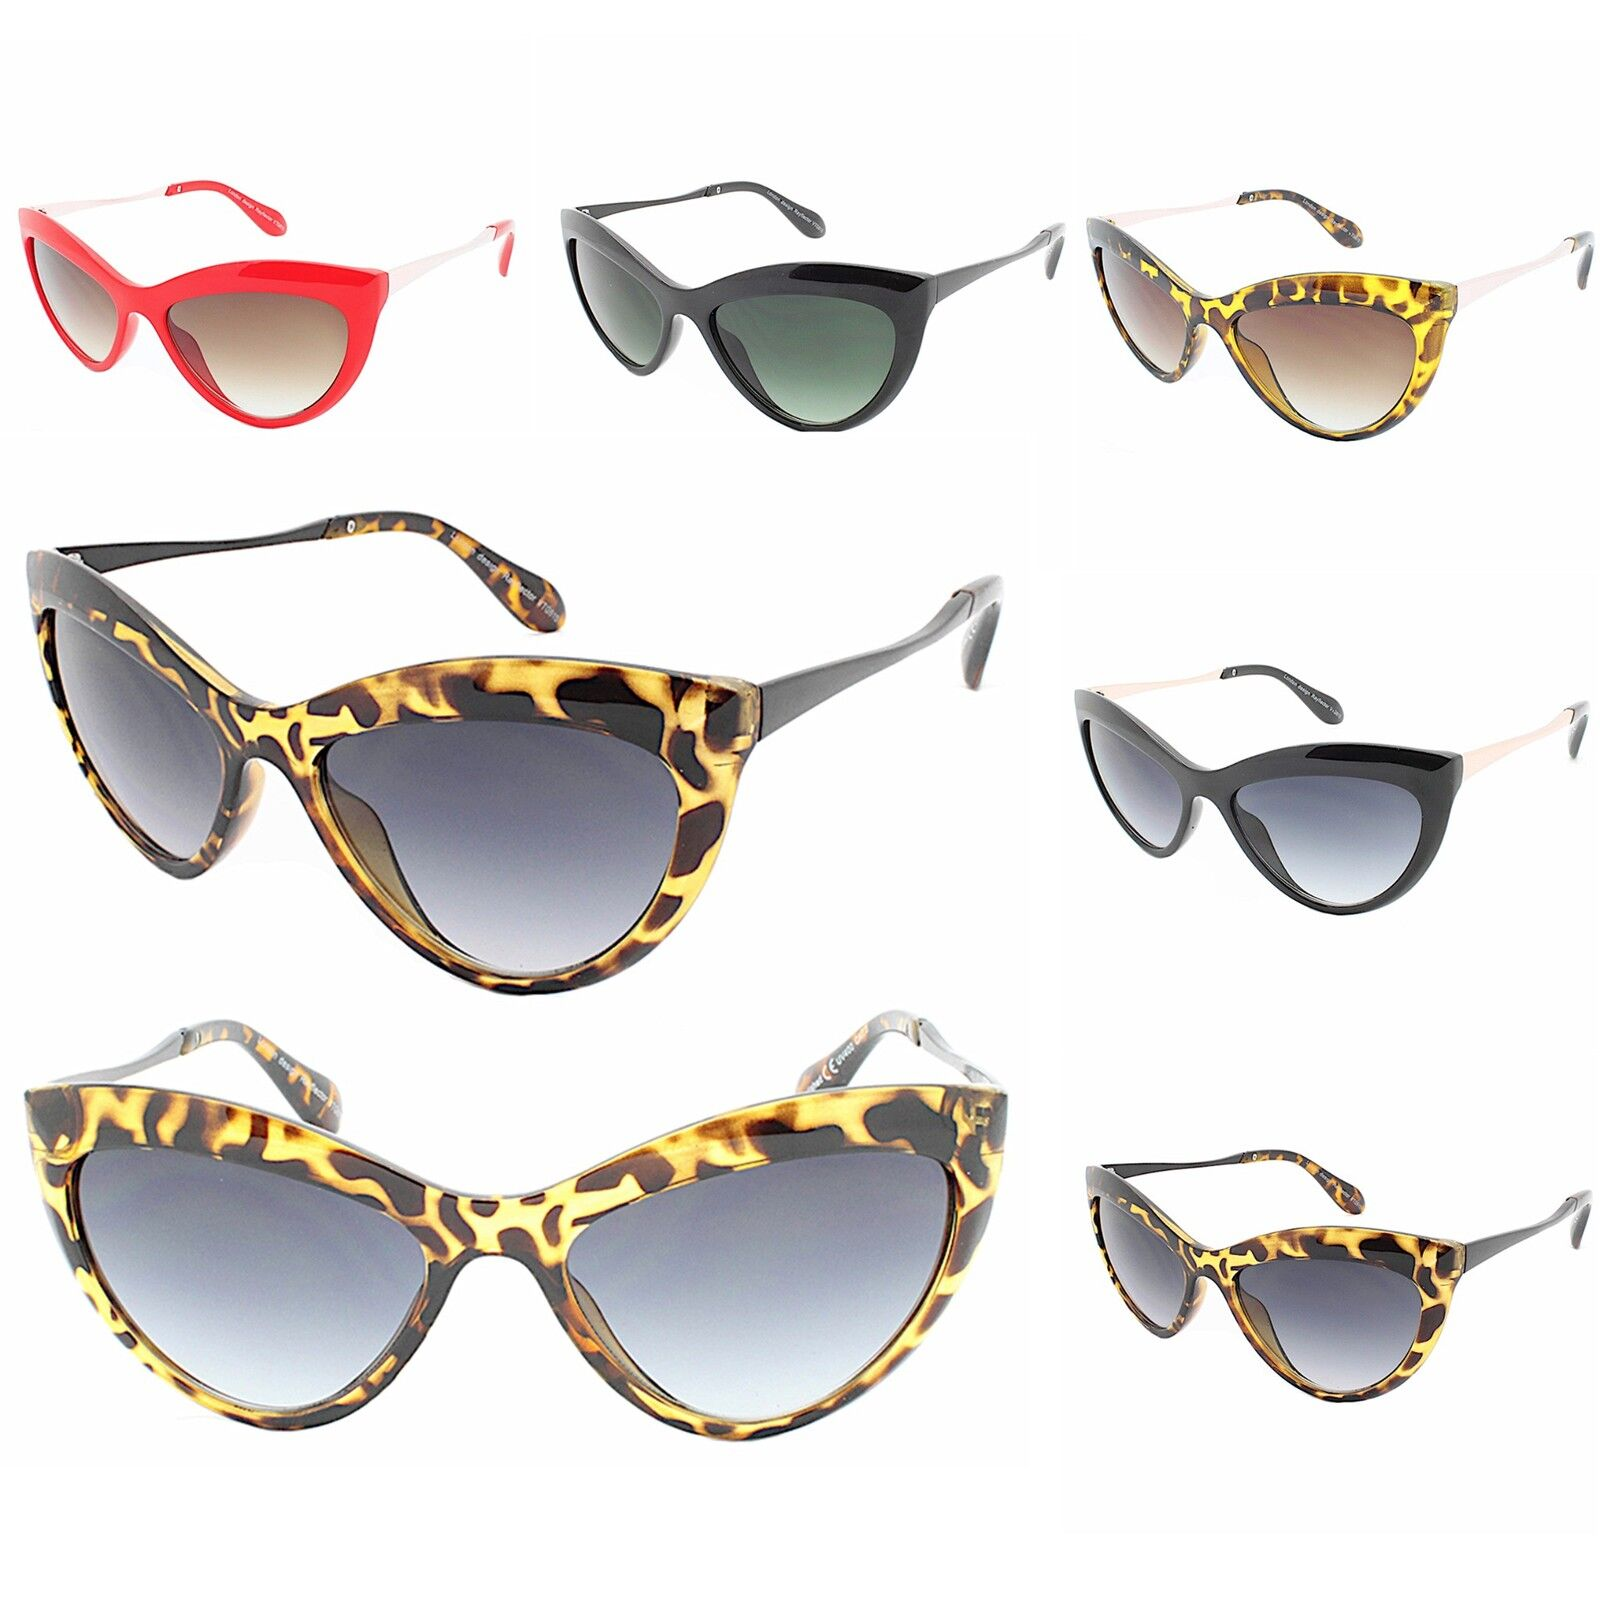 813d11eb6fdd Details about Womens Oversized Cat Eye Sunglasses Vintage Retro Rockabilly  50 s Pinup